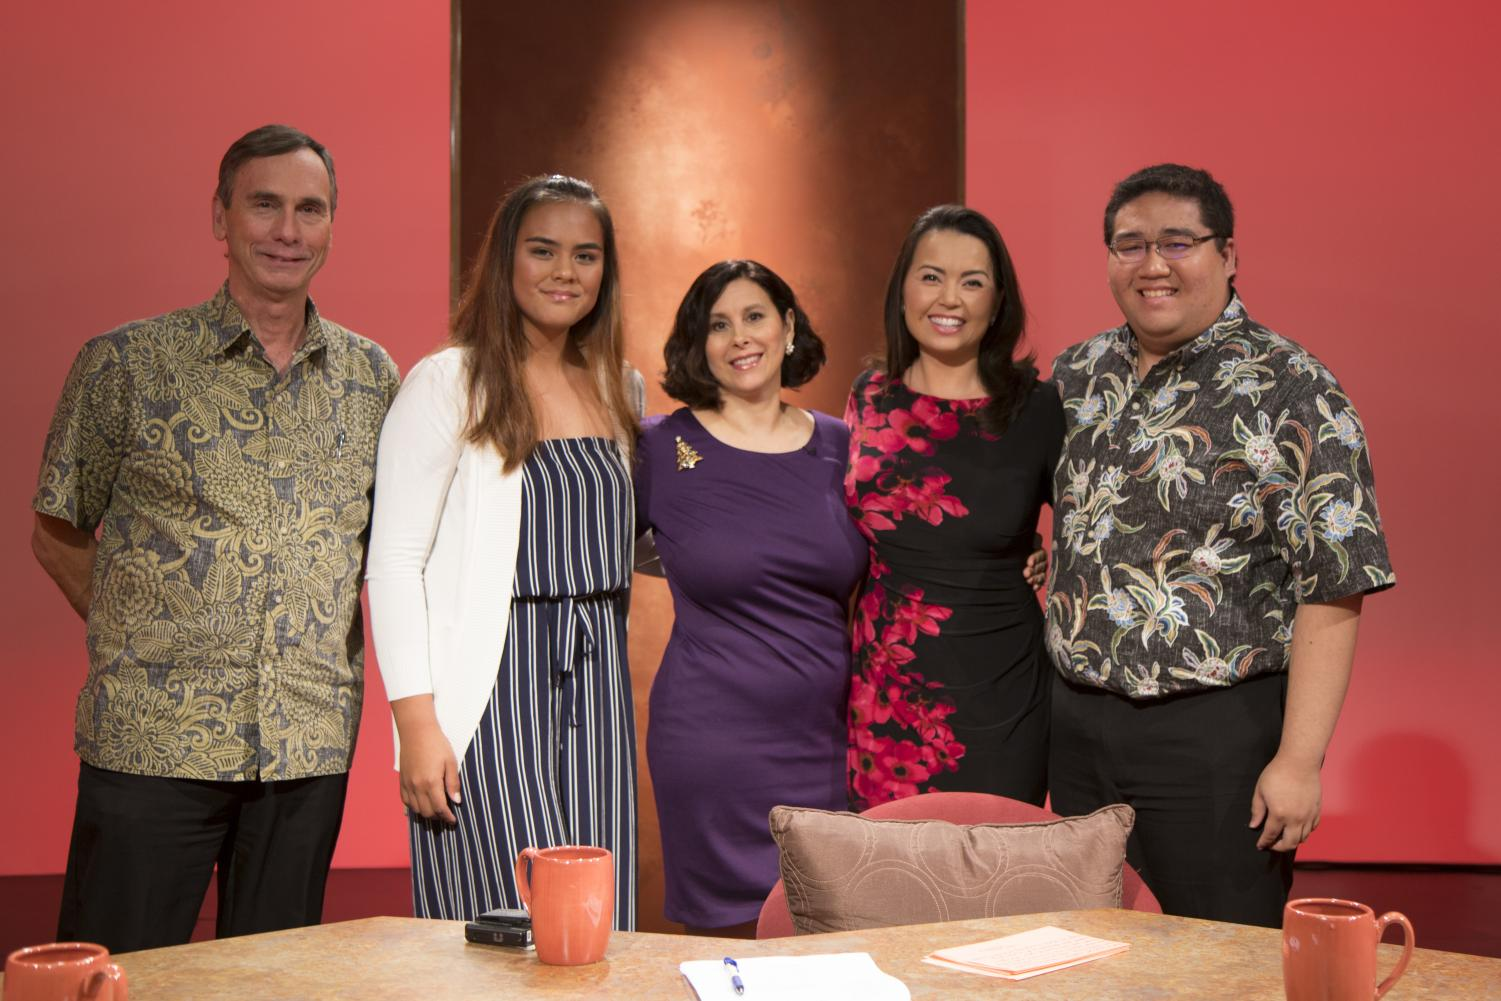 "Journalist Daryl Huff, myself, moderator Beth Ann Kozlovich, journalist Yunji De Nies and University of Hawaii at Manoa student journalist Spencer Oshita participated in a live discussion on PBS Hawaii's ""Insights"" program. We talked about the top news stories of the year, including net neutrality and homelessness. Photos courtesy of PBS Hawaii."